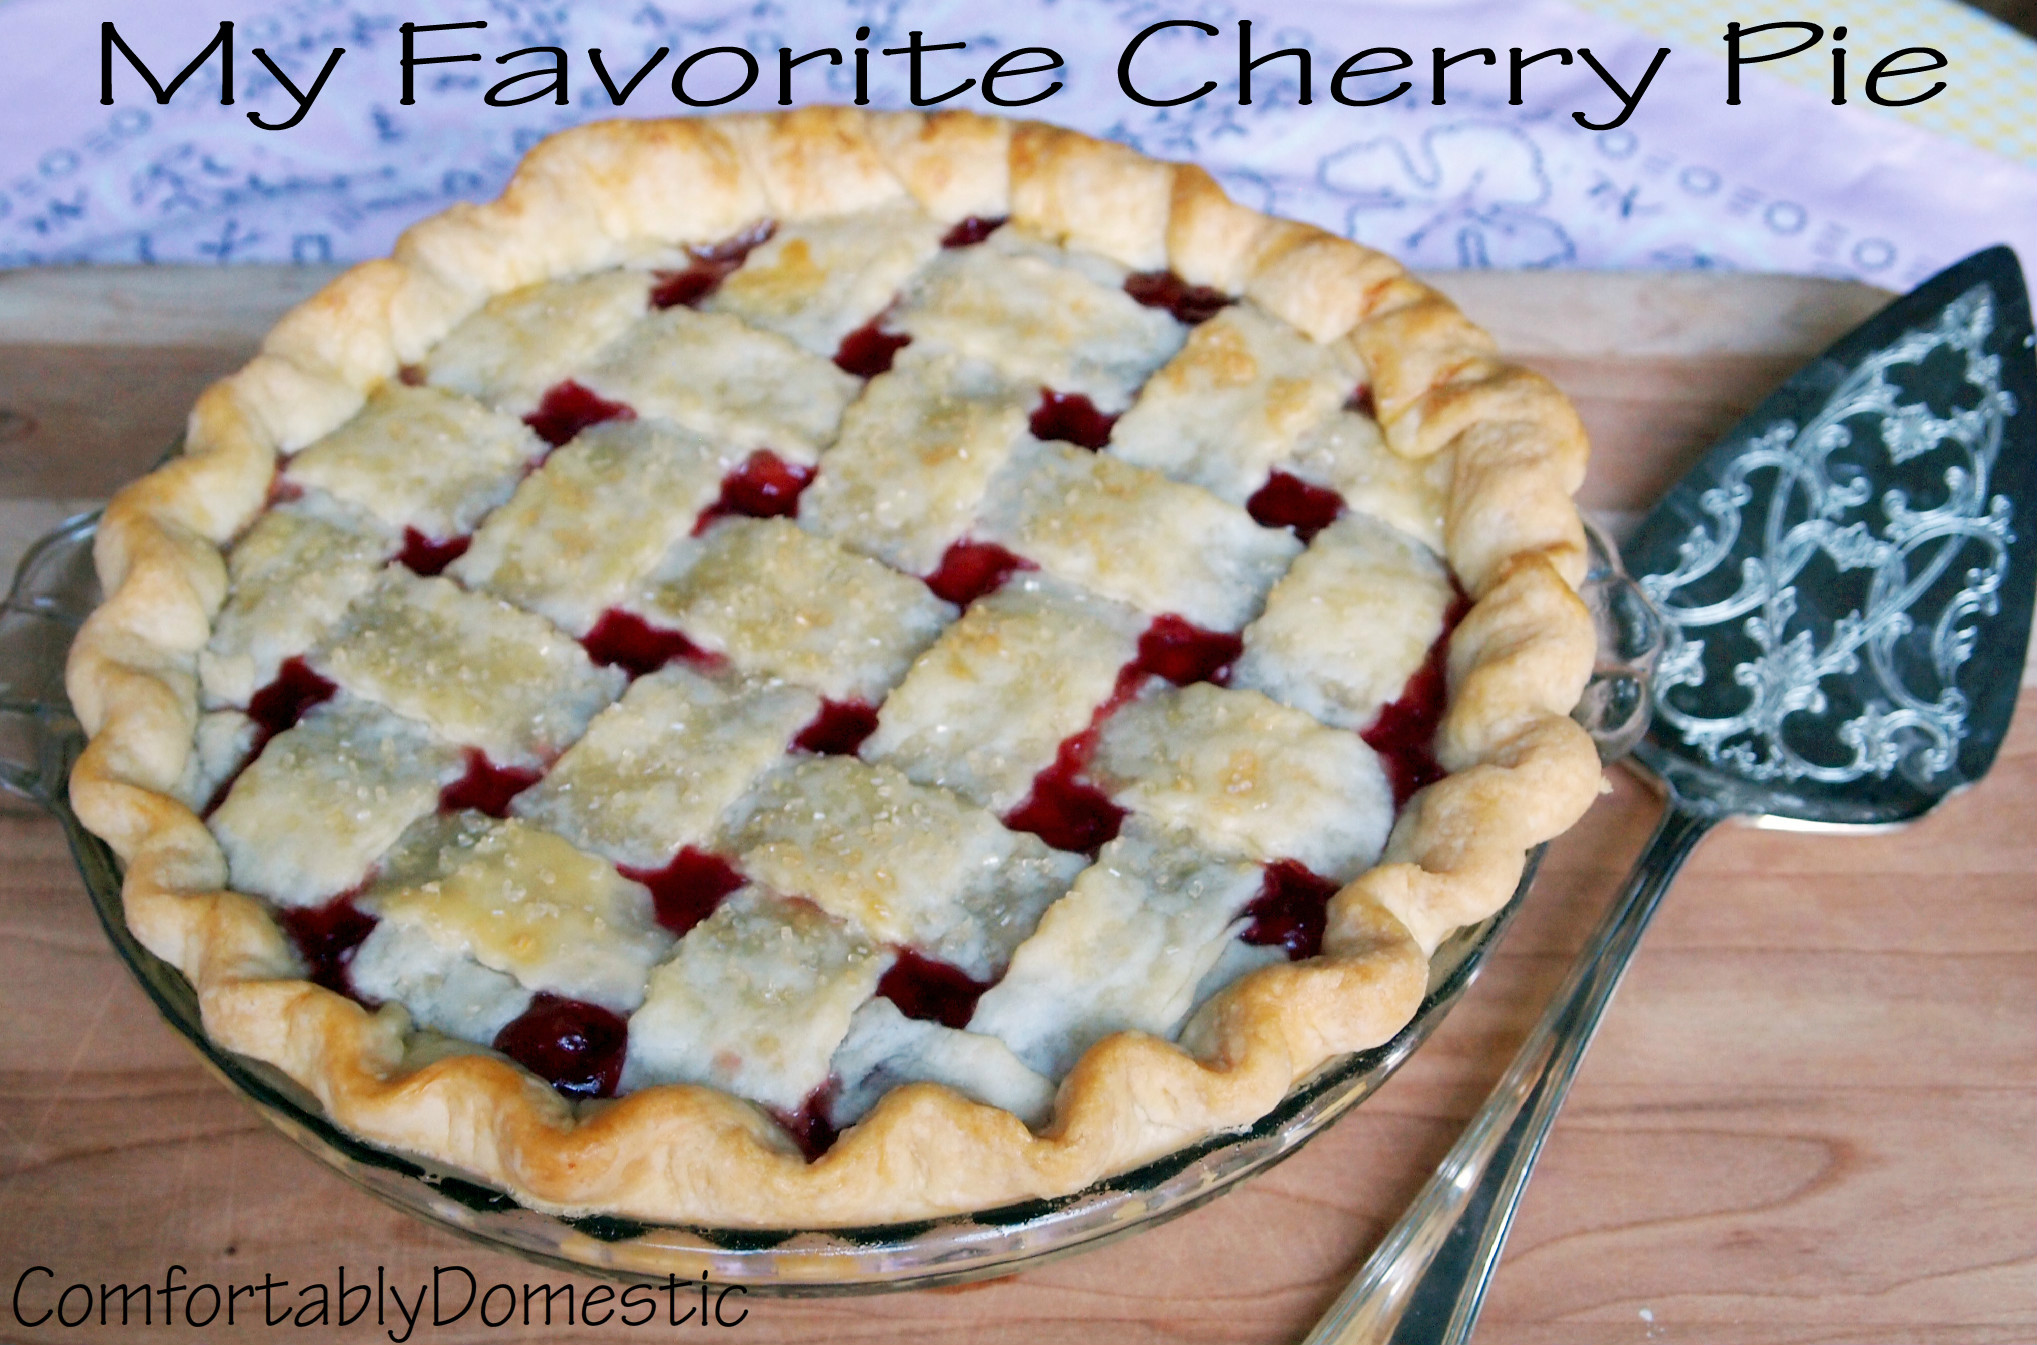 Classic Cherry Pie With Lattice Crust Recipes — Dishmaps